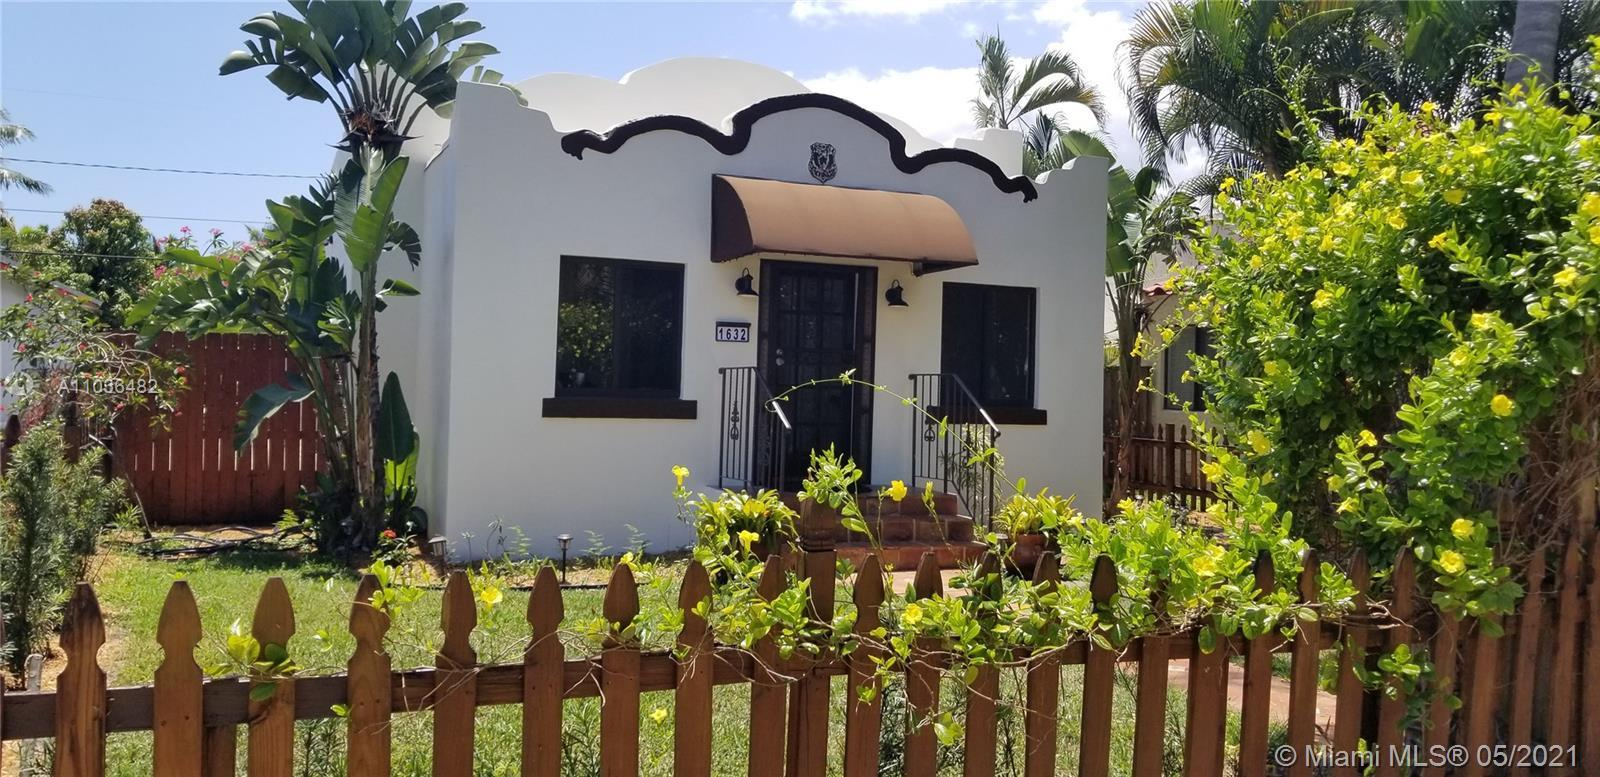 Absolutely Lovely Home with so much charm located in desirable East Hollywood, just minutes to beach